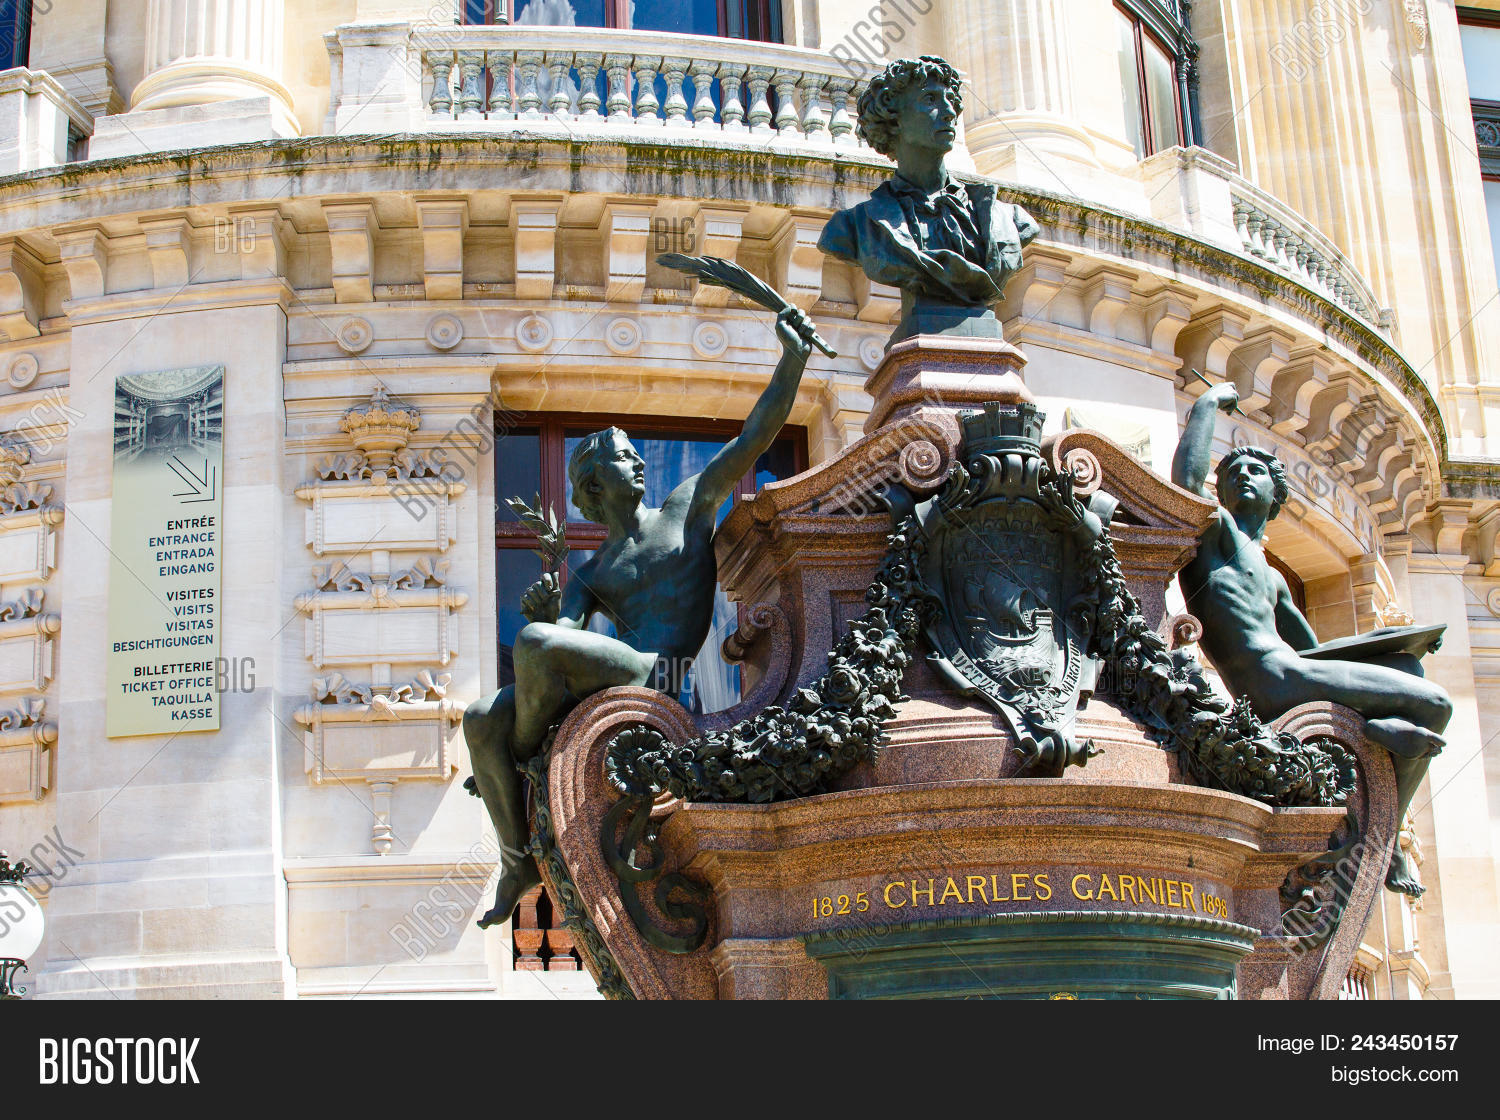 Paris, France - May 20 Image & Photo (Free Trial) | Bigstock